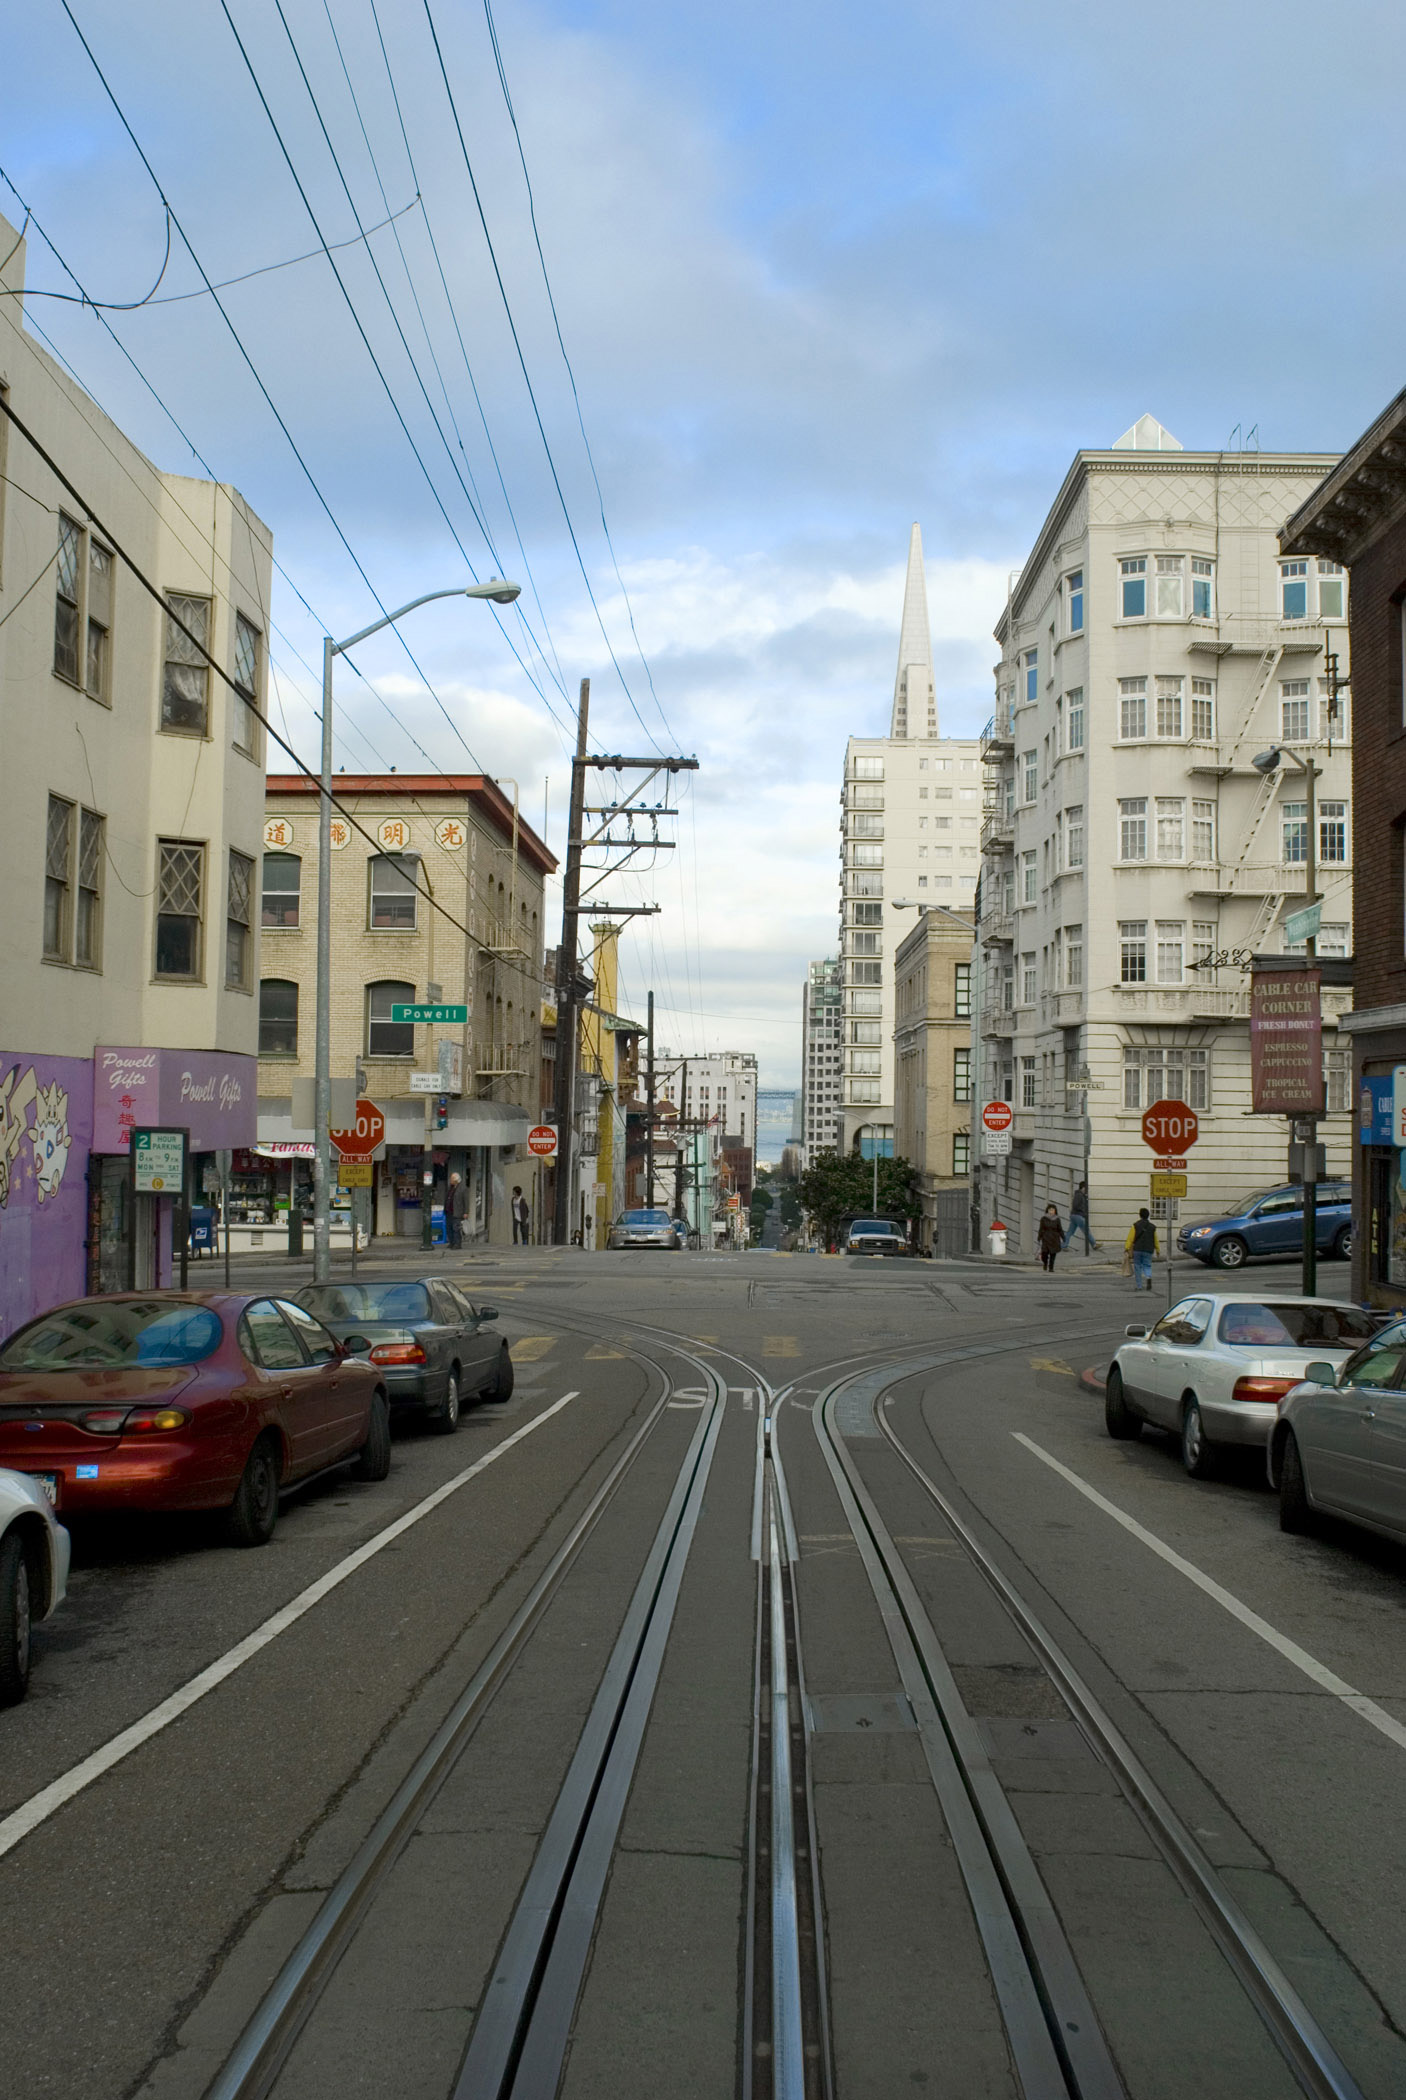 Cable car ride through the streets of San Francisco with a view out of the rear of the receding tracks and architecture of the buildings